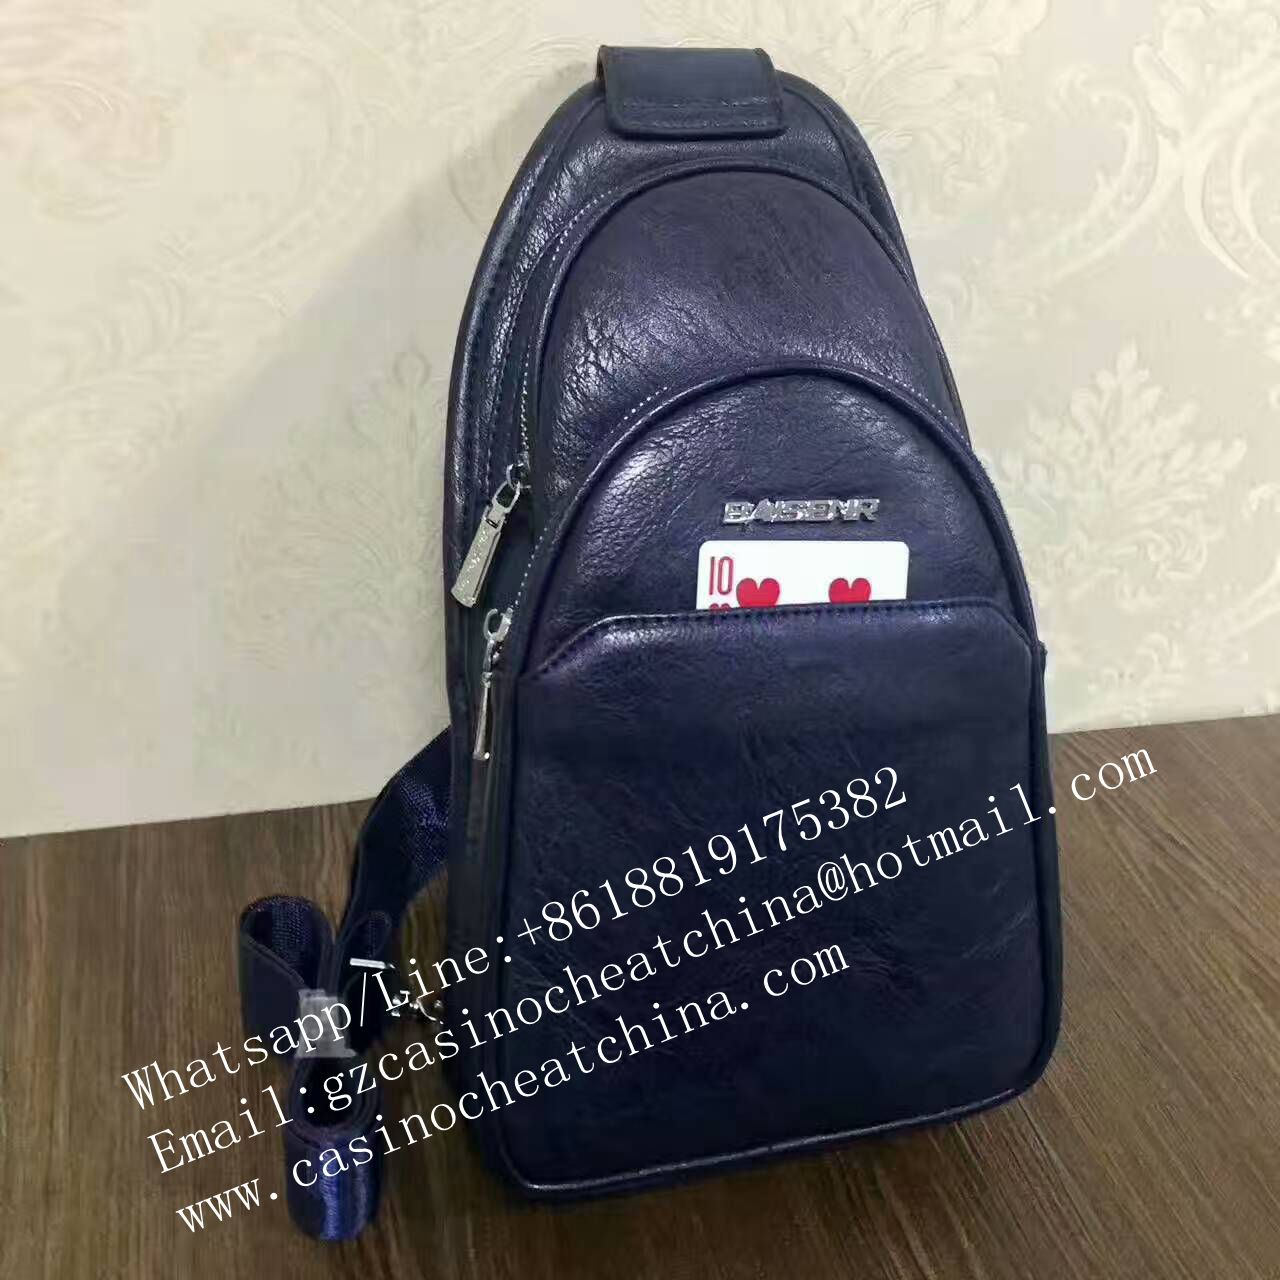 Poker exchange shoulder bag for poker cheating device/exchange poker cards/magic trick/casino cheat/cards cheat